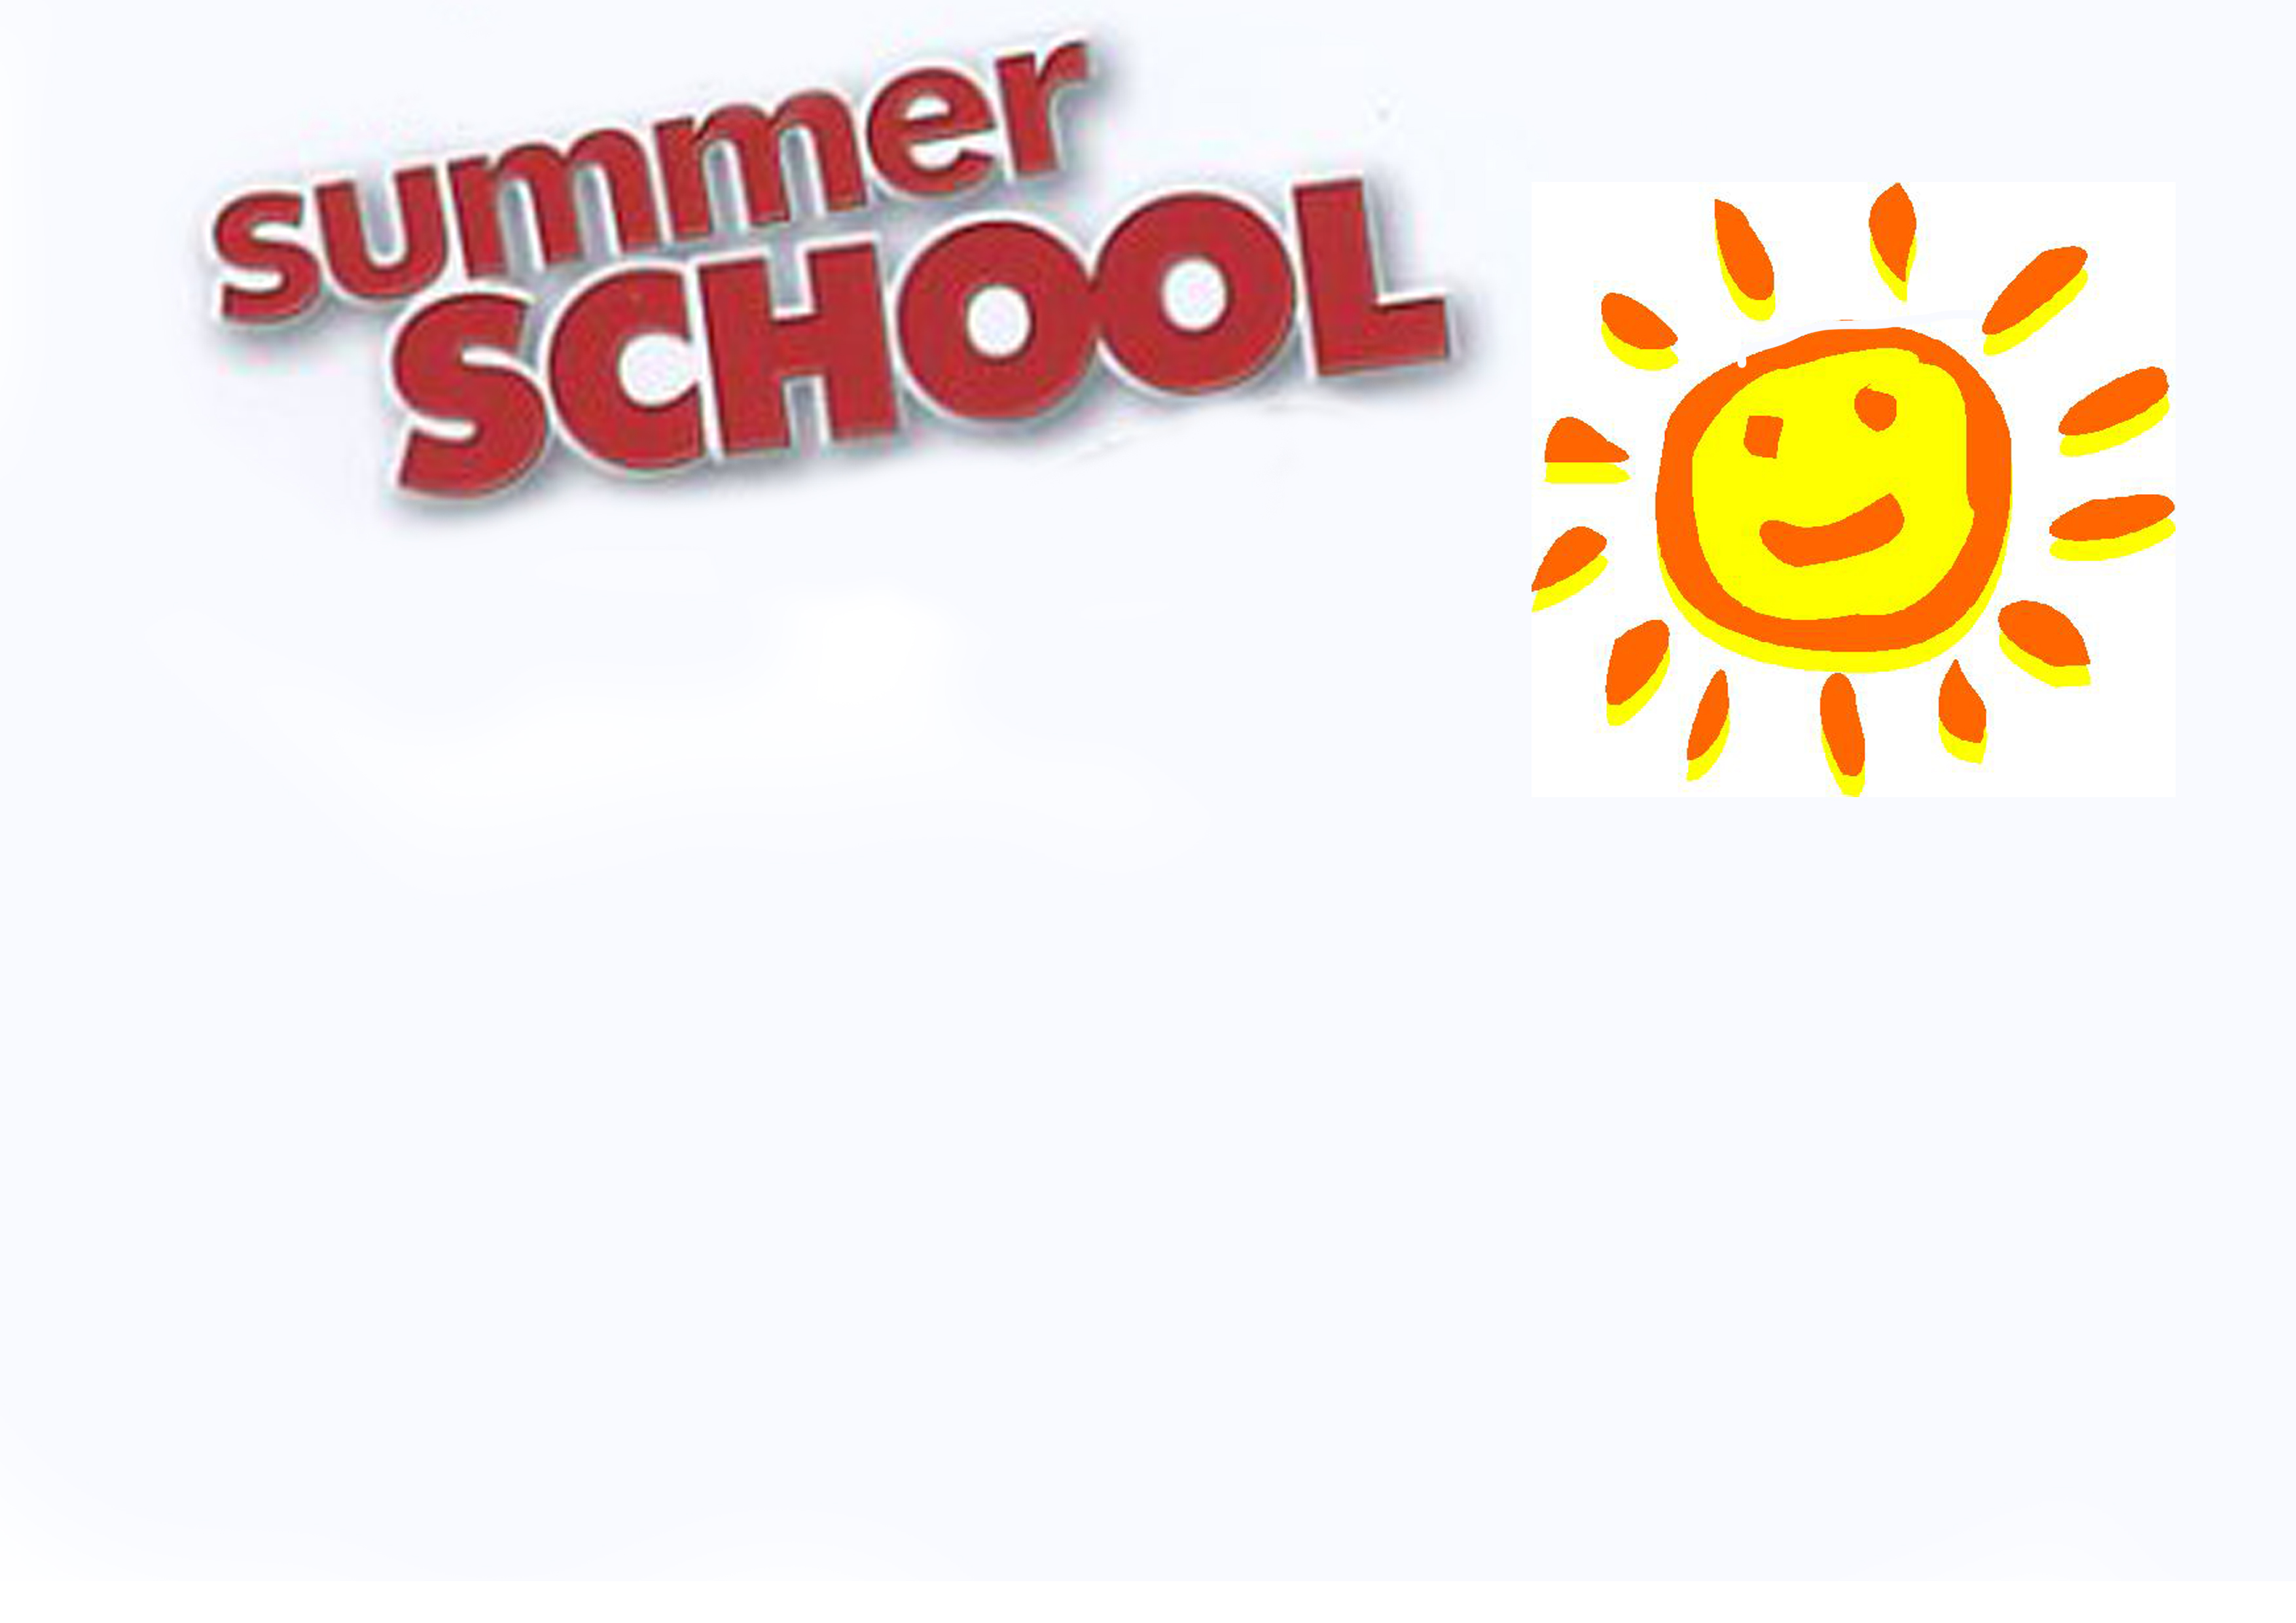 High school online courses offered by universities - Online Summer ...